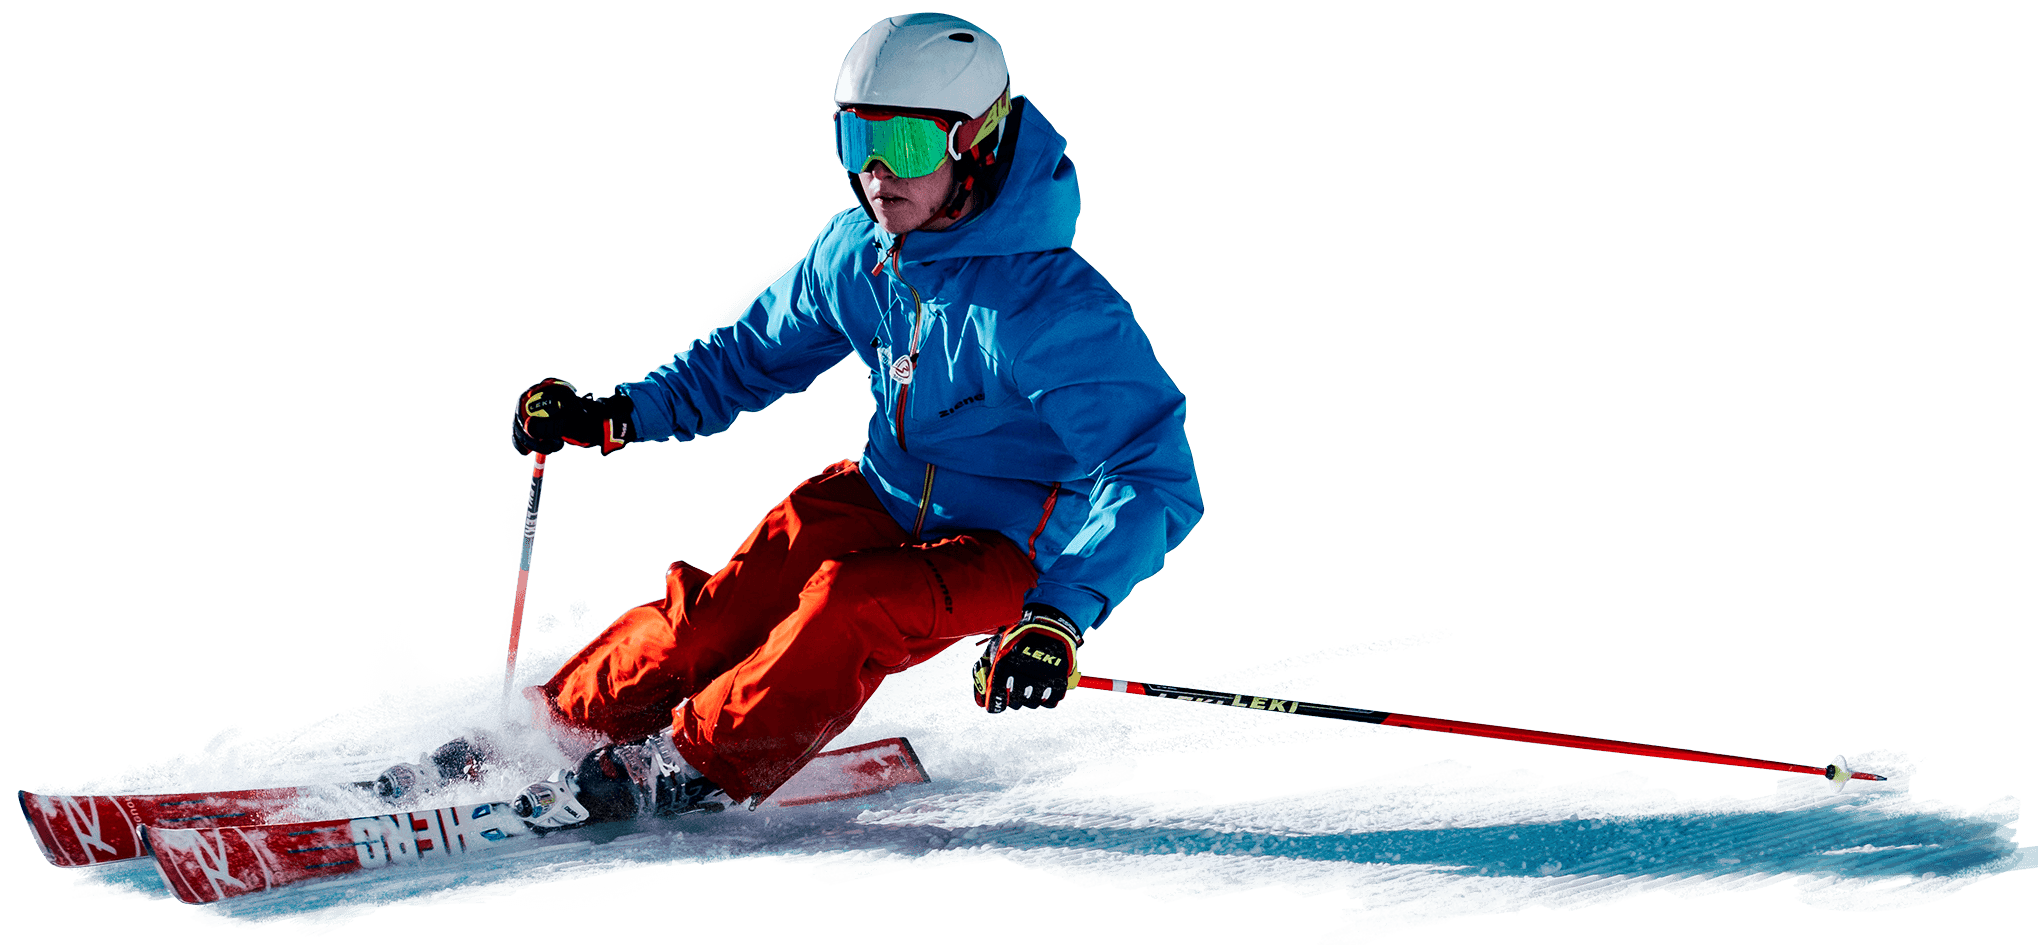 A skier wearing a blue jacket and red pants carves down the piste.